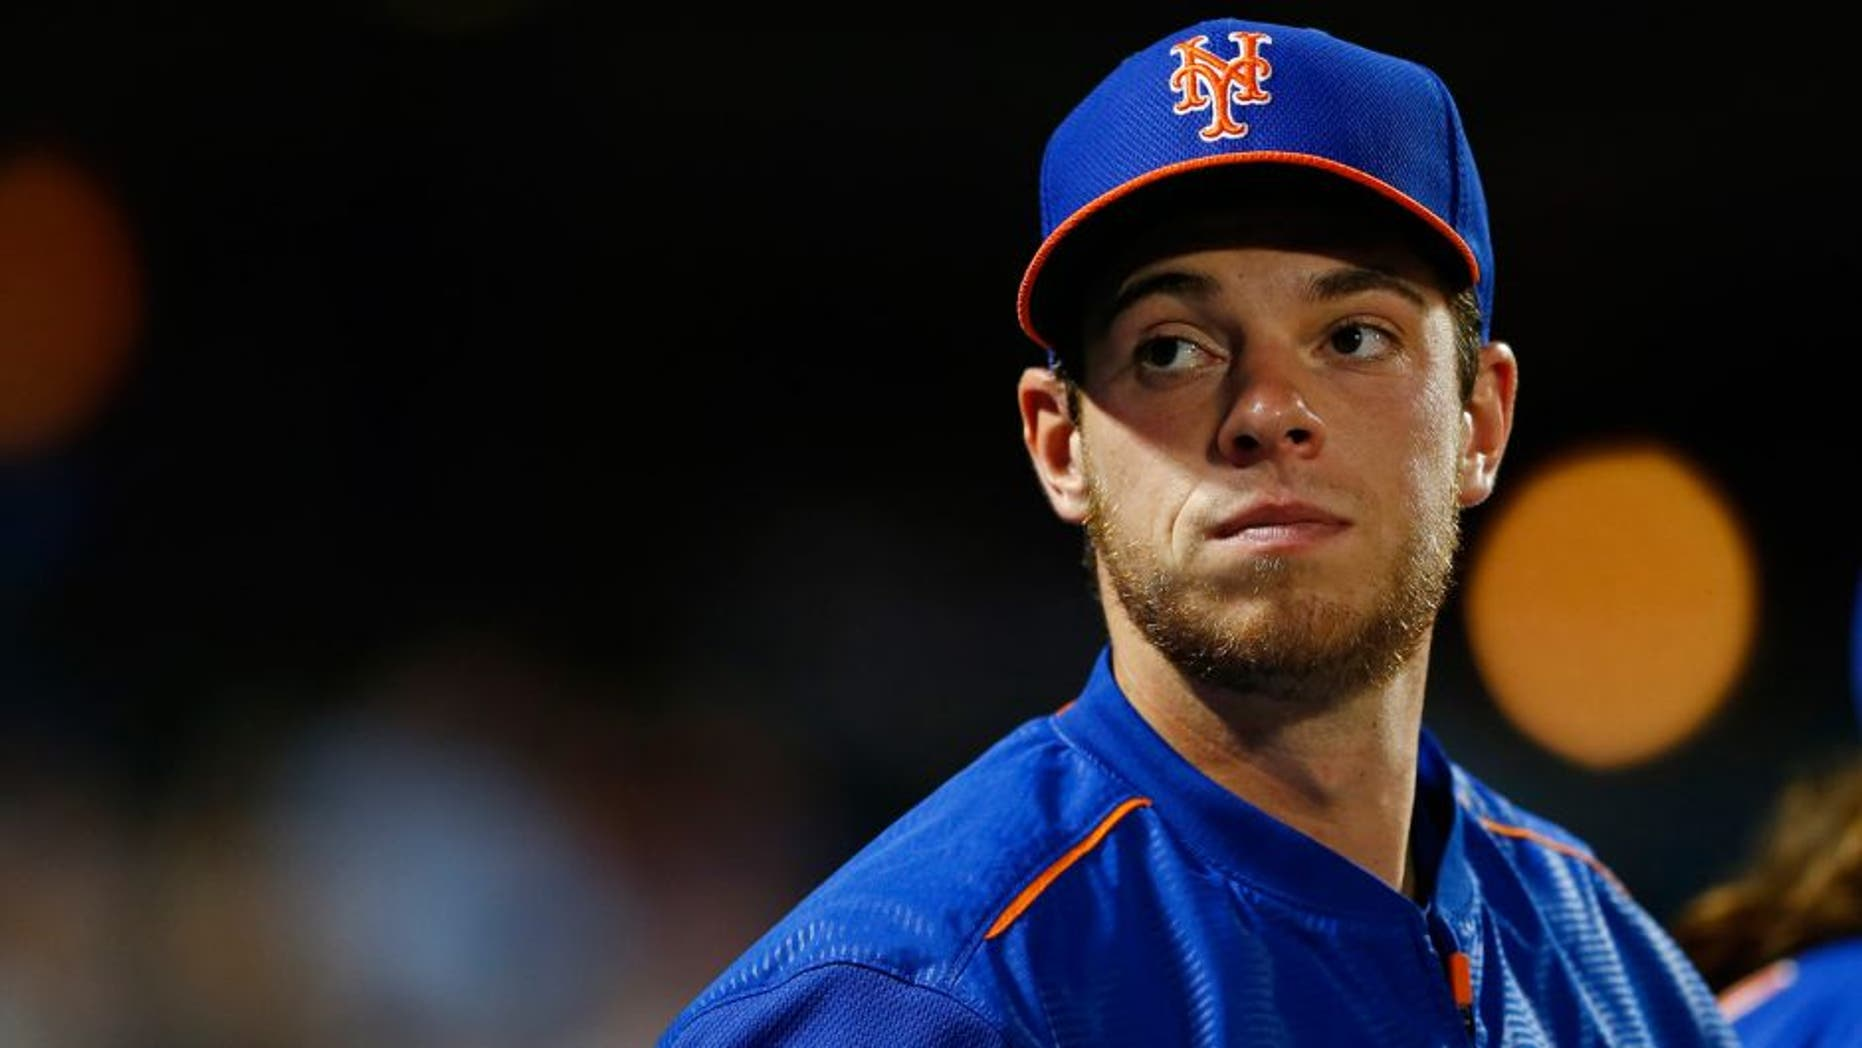 NEW YORK, NY - JULY 10: Steven Matz of the New York Mets in the dugout against the Arizona Diamondbacks during a game on July 10, 2015 at Citi Field in the Flushing neighborhood of the Queens borough of New York City. (Photo by Rich Schultz/Getty Images)